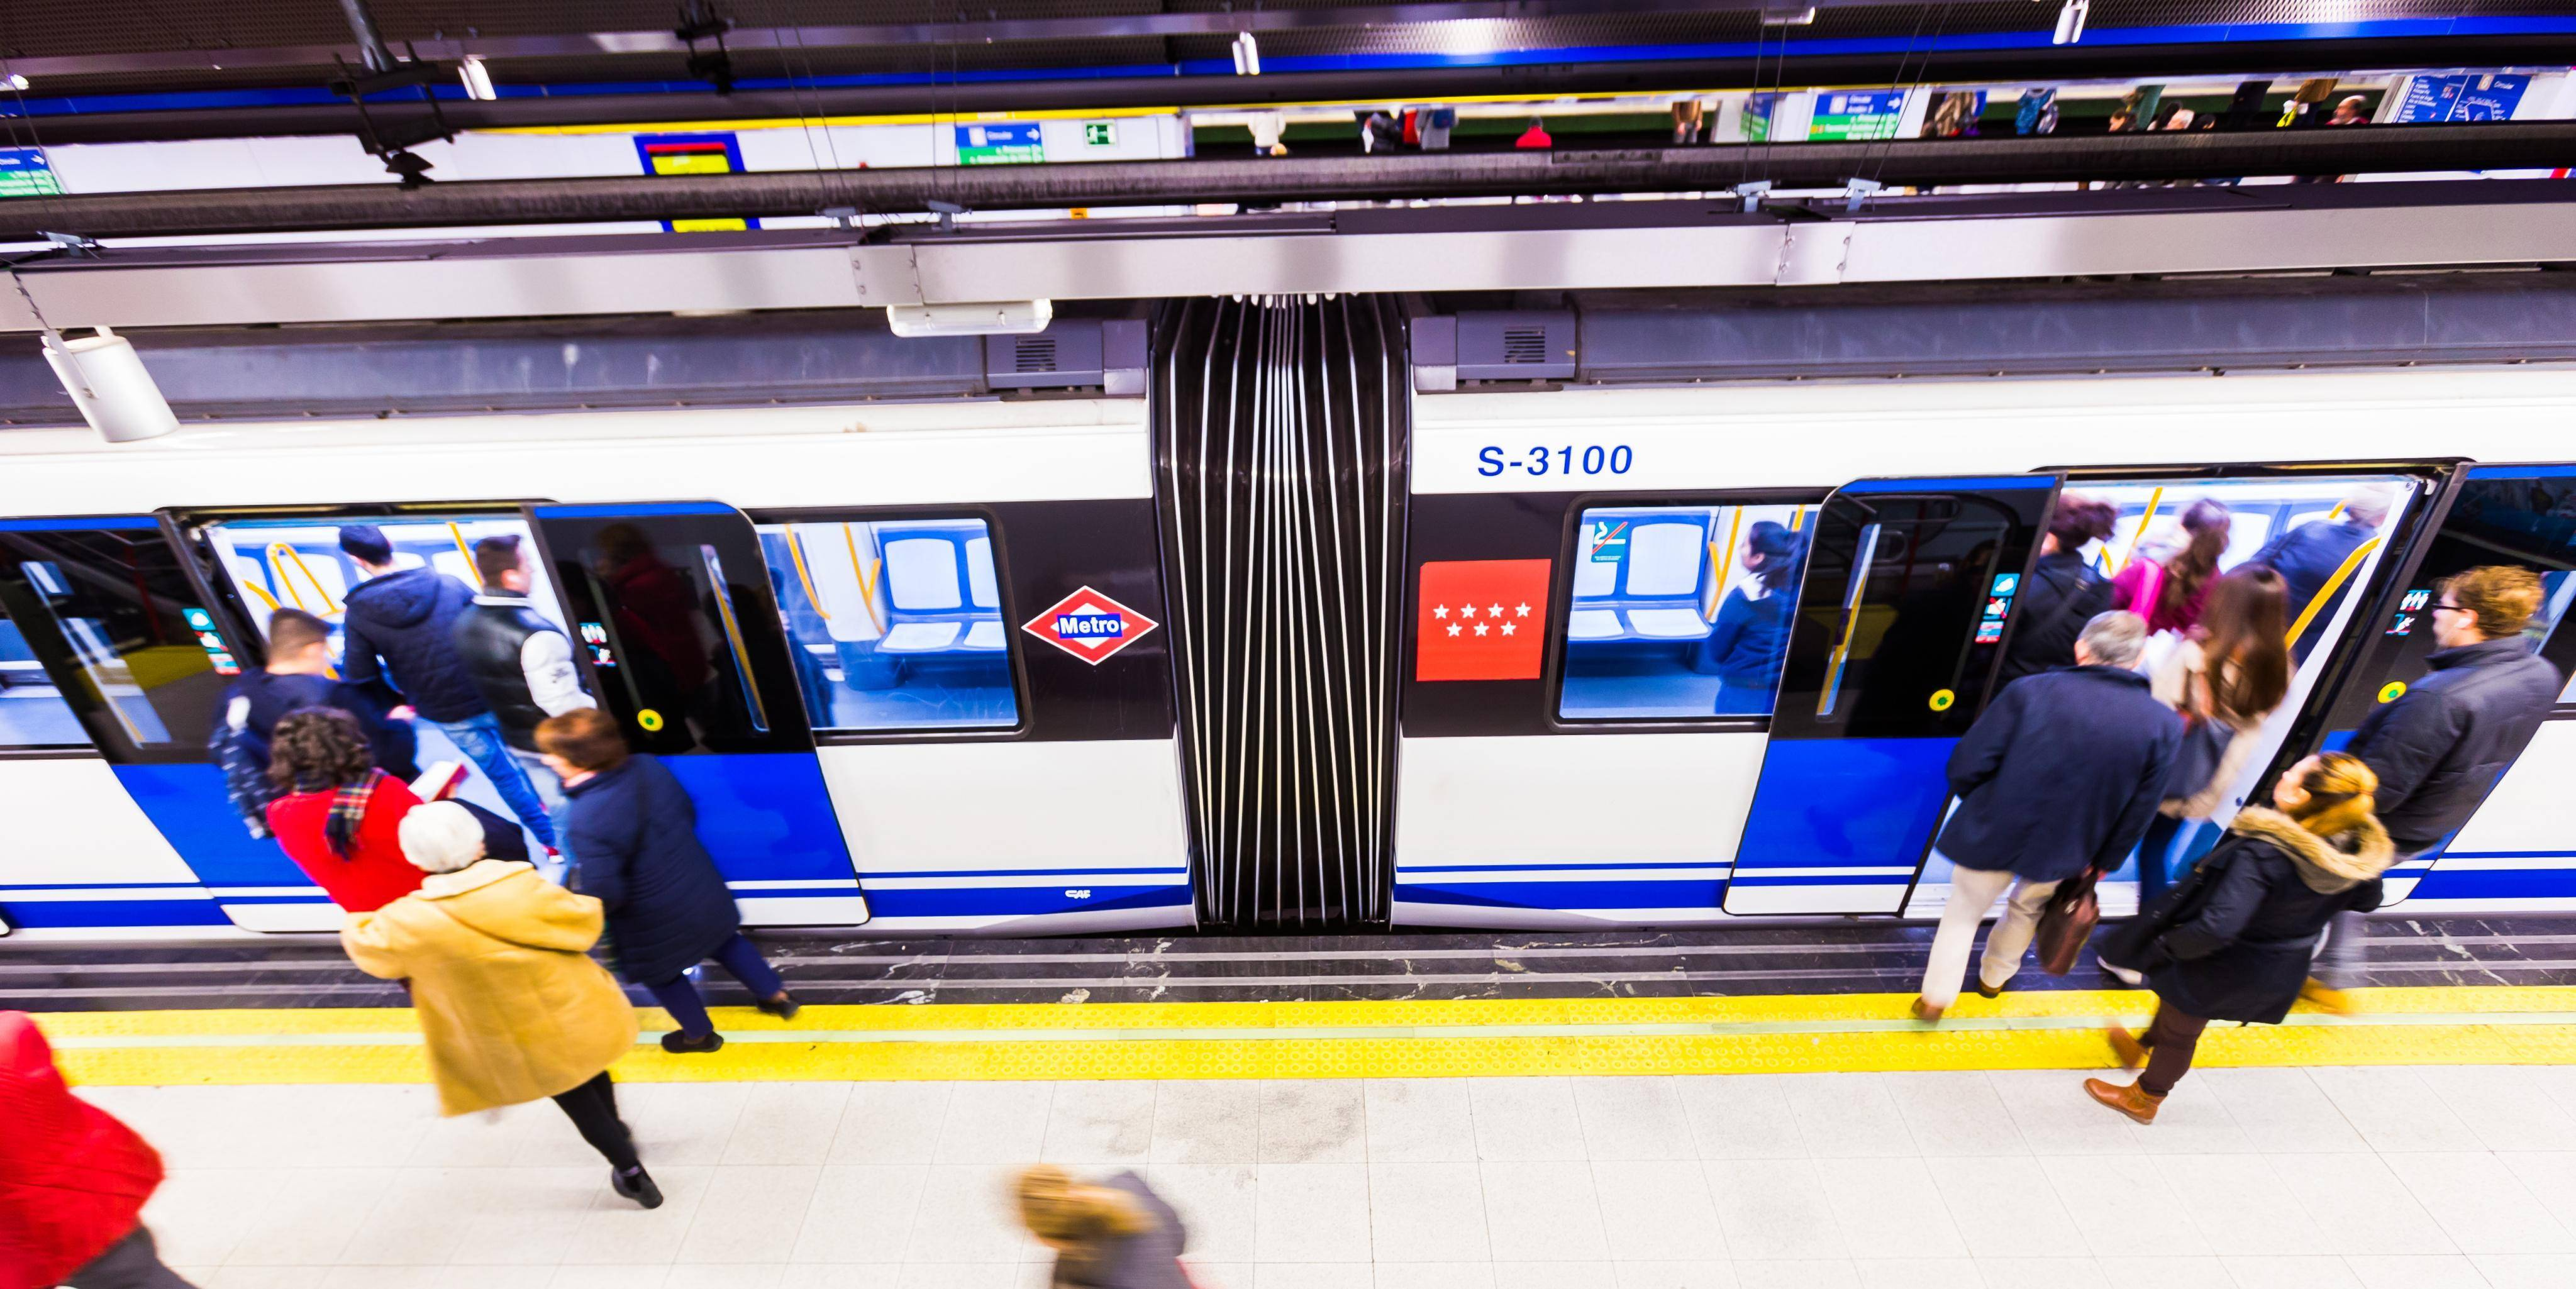 Regional Government of Madrid announces process to hire 100 new train drivers at Metro de Madrid